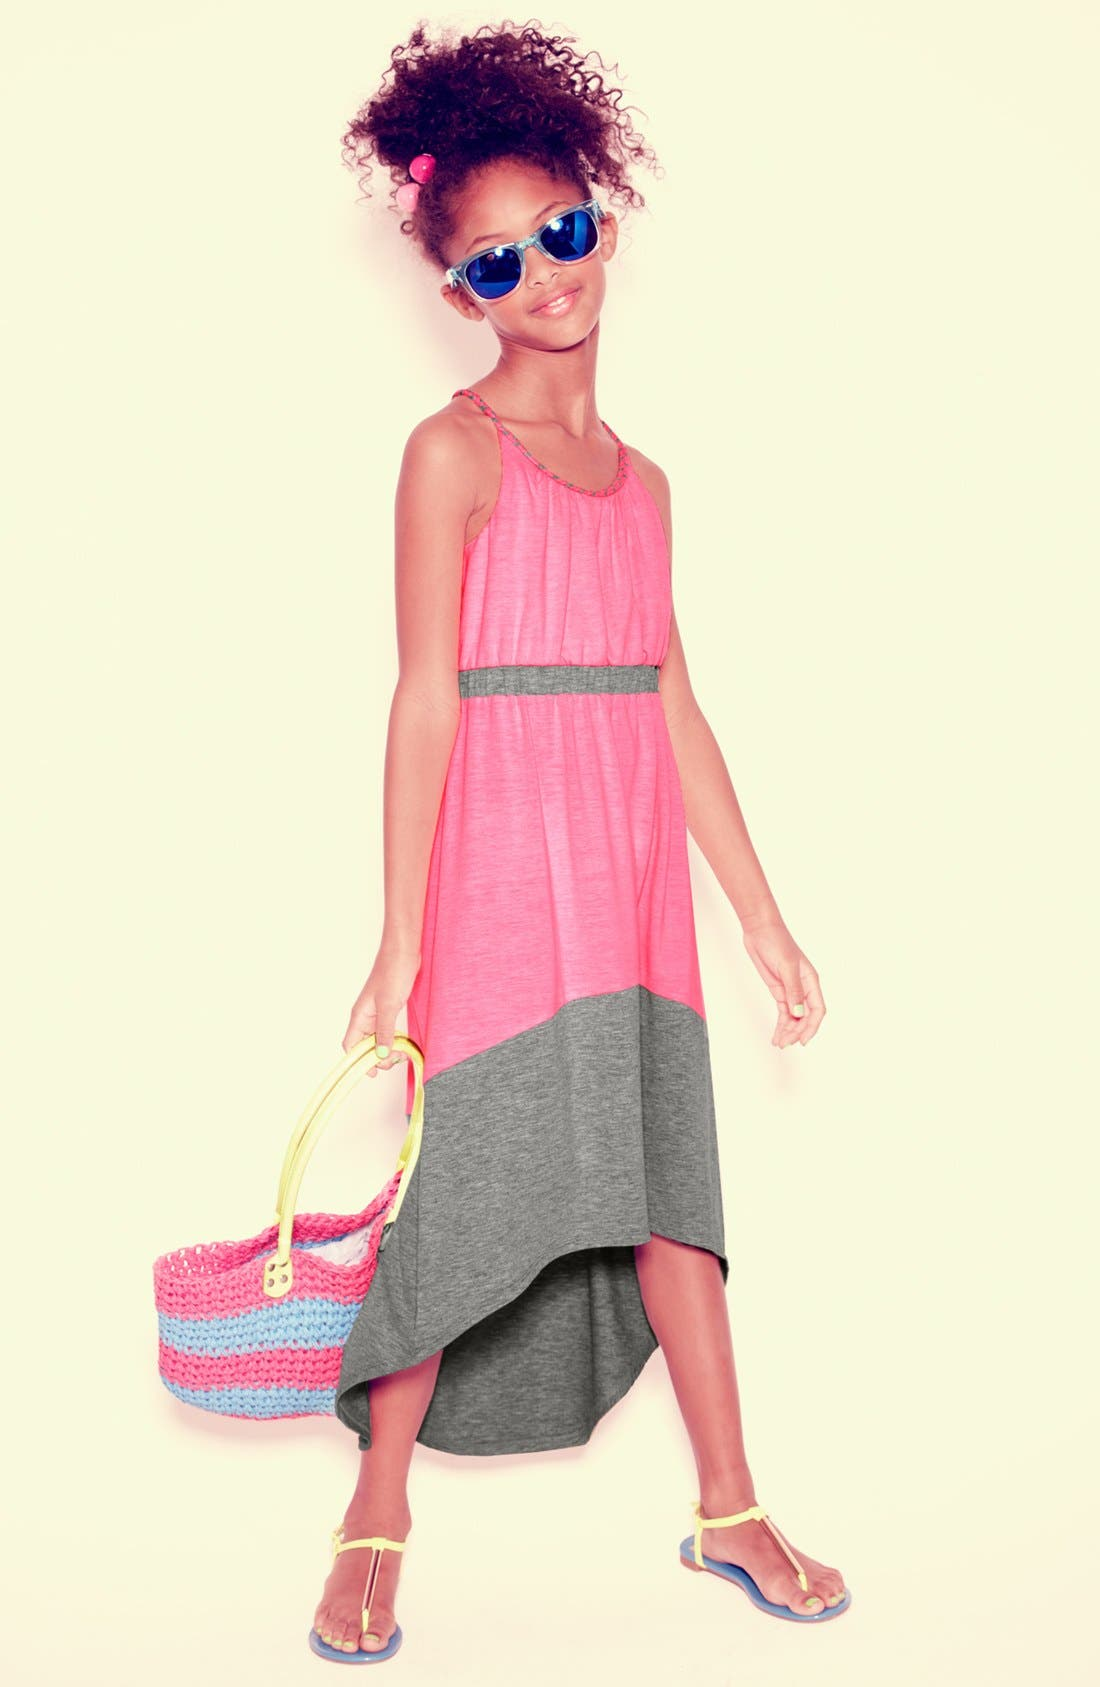 Alternate Image 1 Selected - Paper Doll Maxi Dress, Icon Eyewear Sunglasses & Capelli of New York Tote (Little Girls & Big Girls)